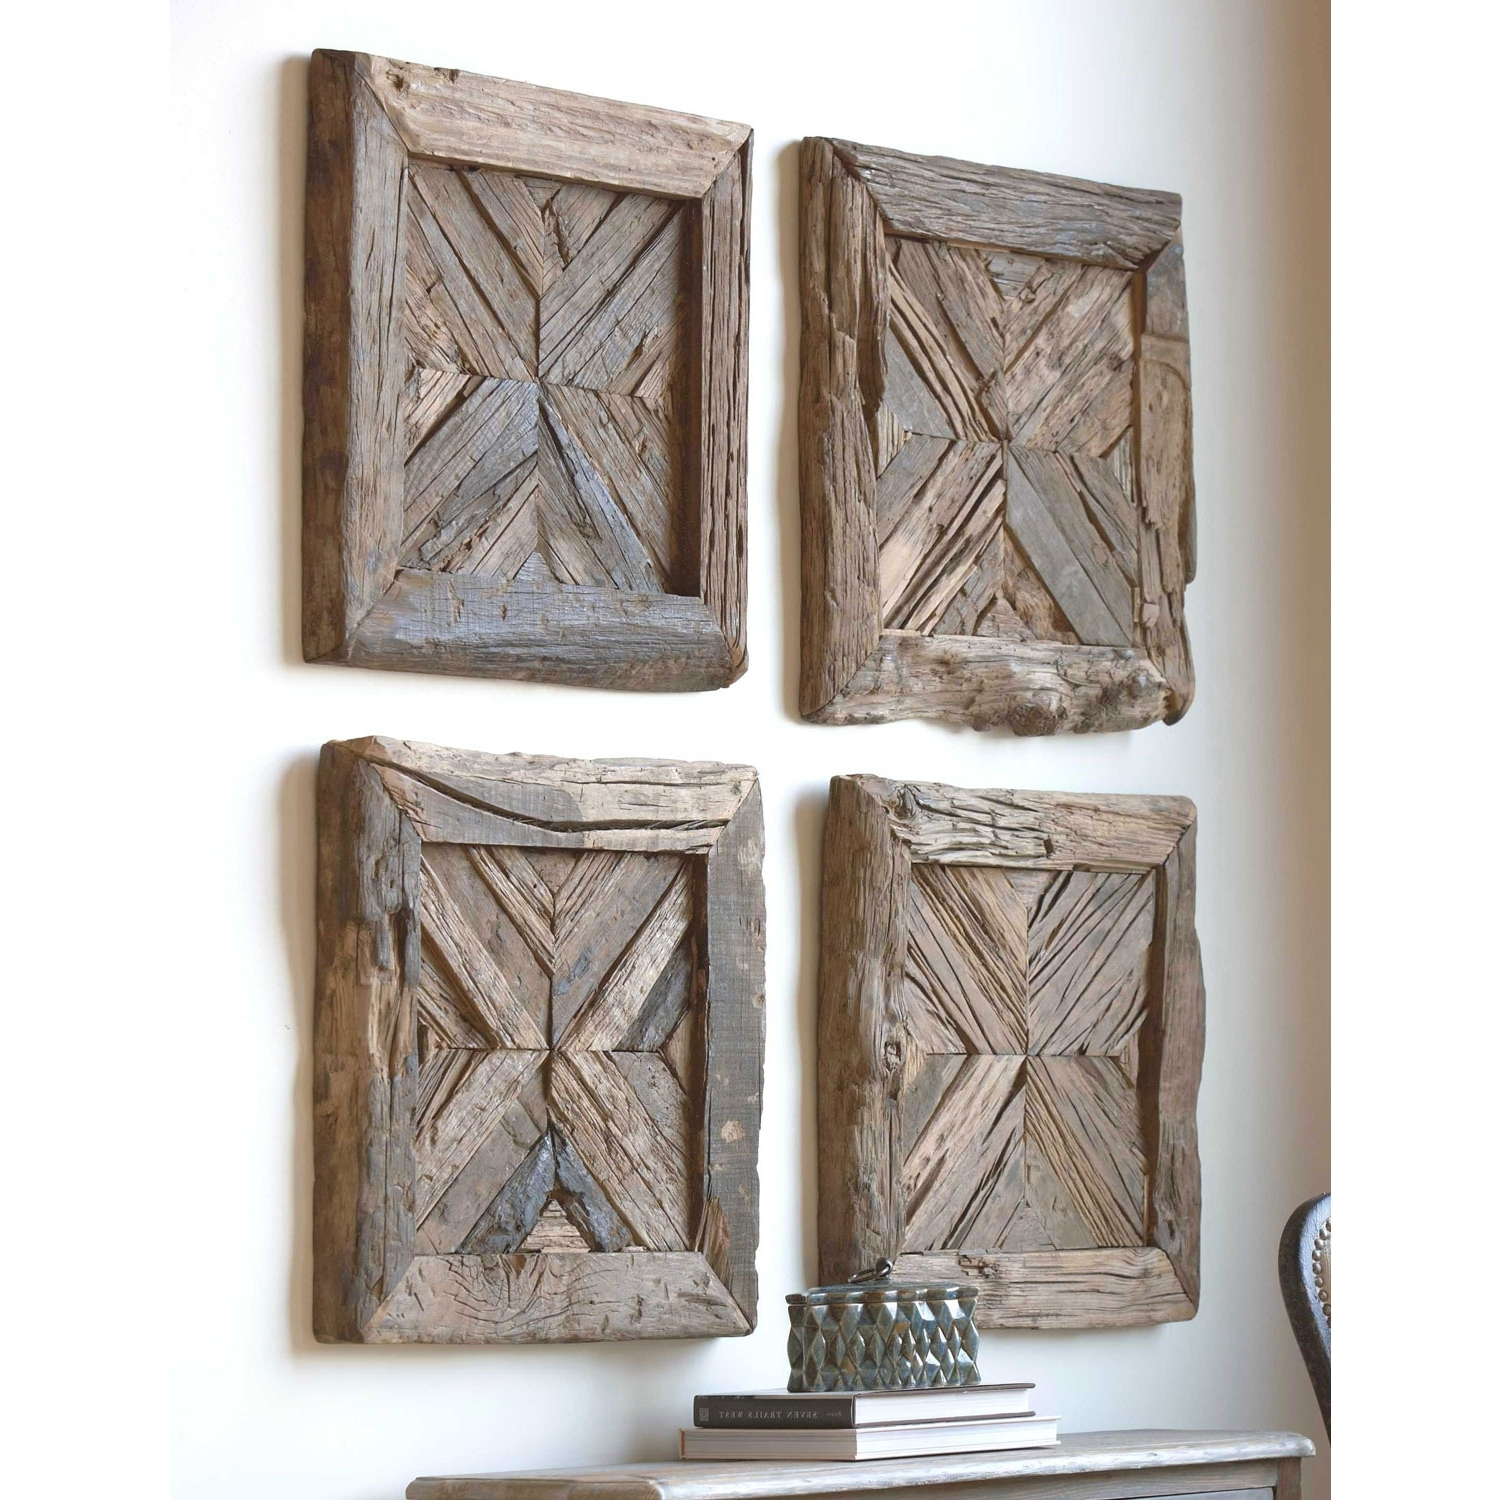 Uttermost Rennick Rustic Wood Wall Art 04014 (Gallery 3 of 20)